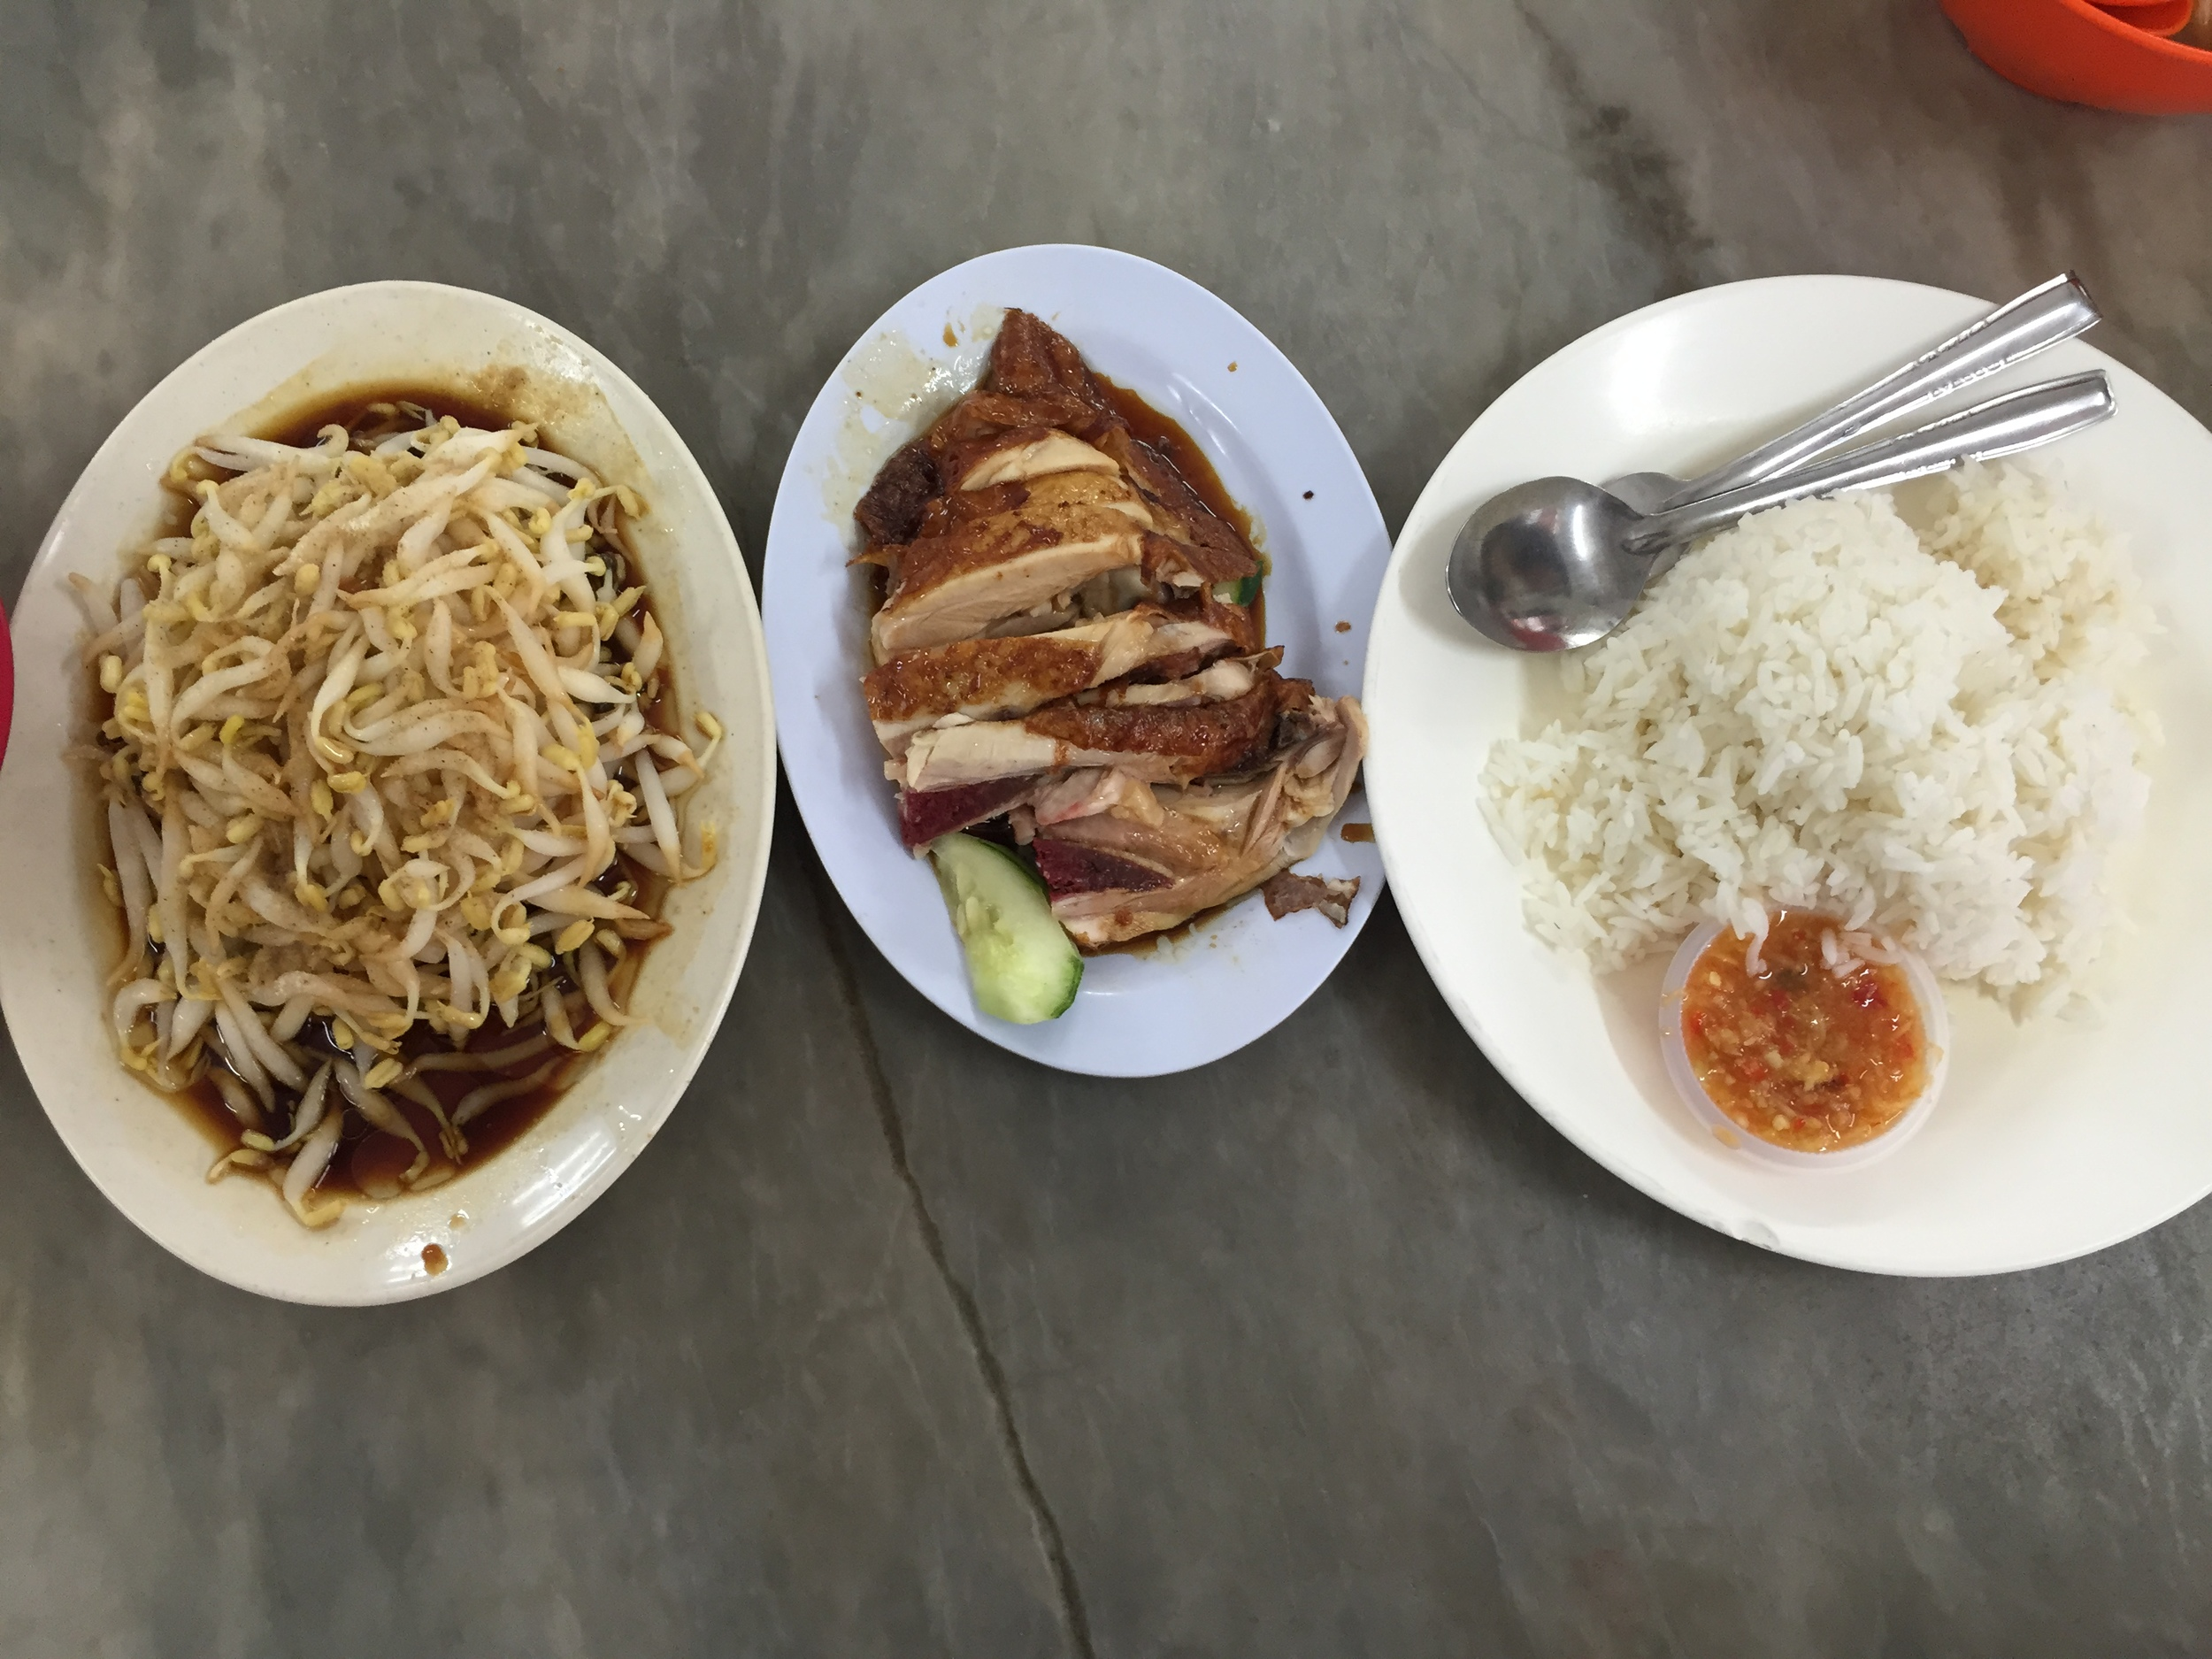 The next day I got to try: roasted chicken, pork and more of the delicious bean sprouts!